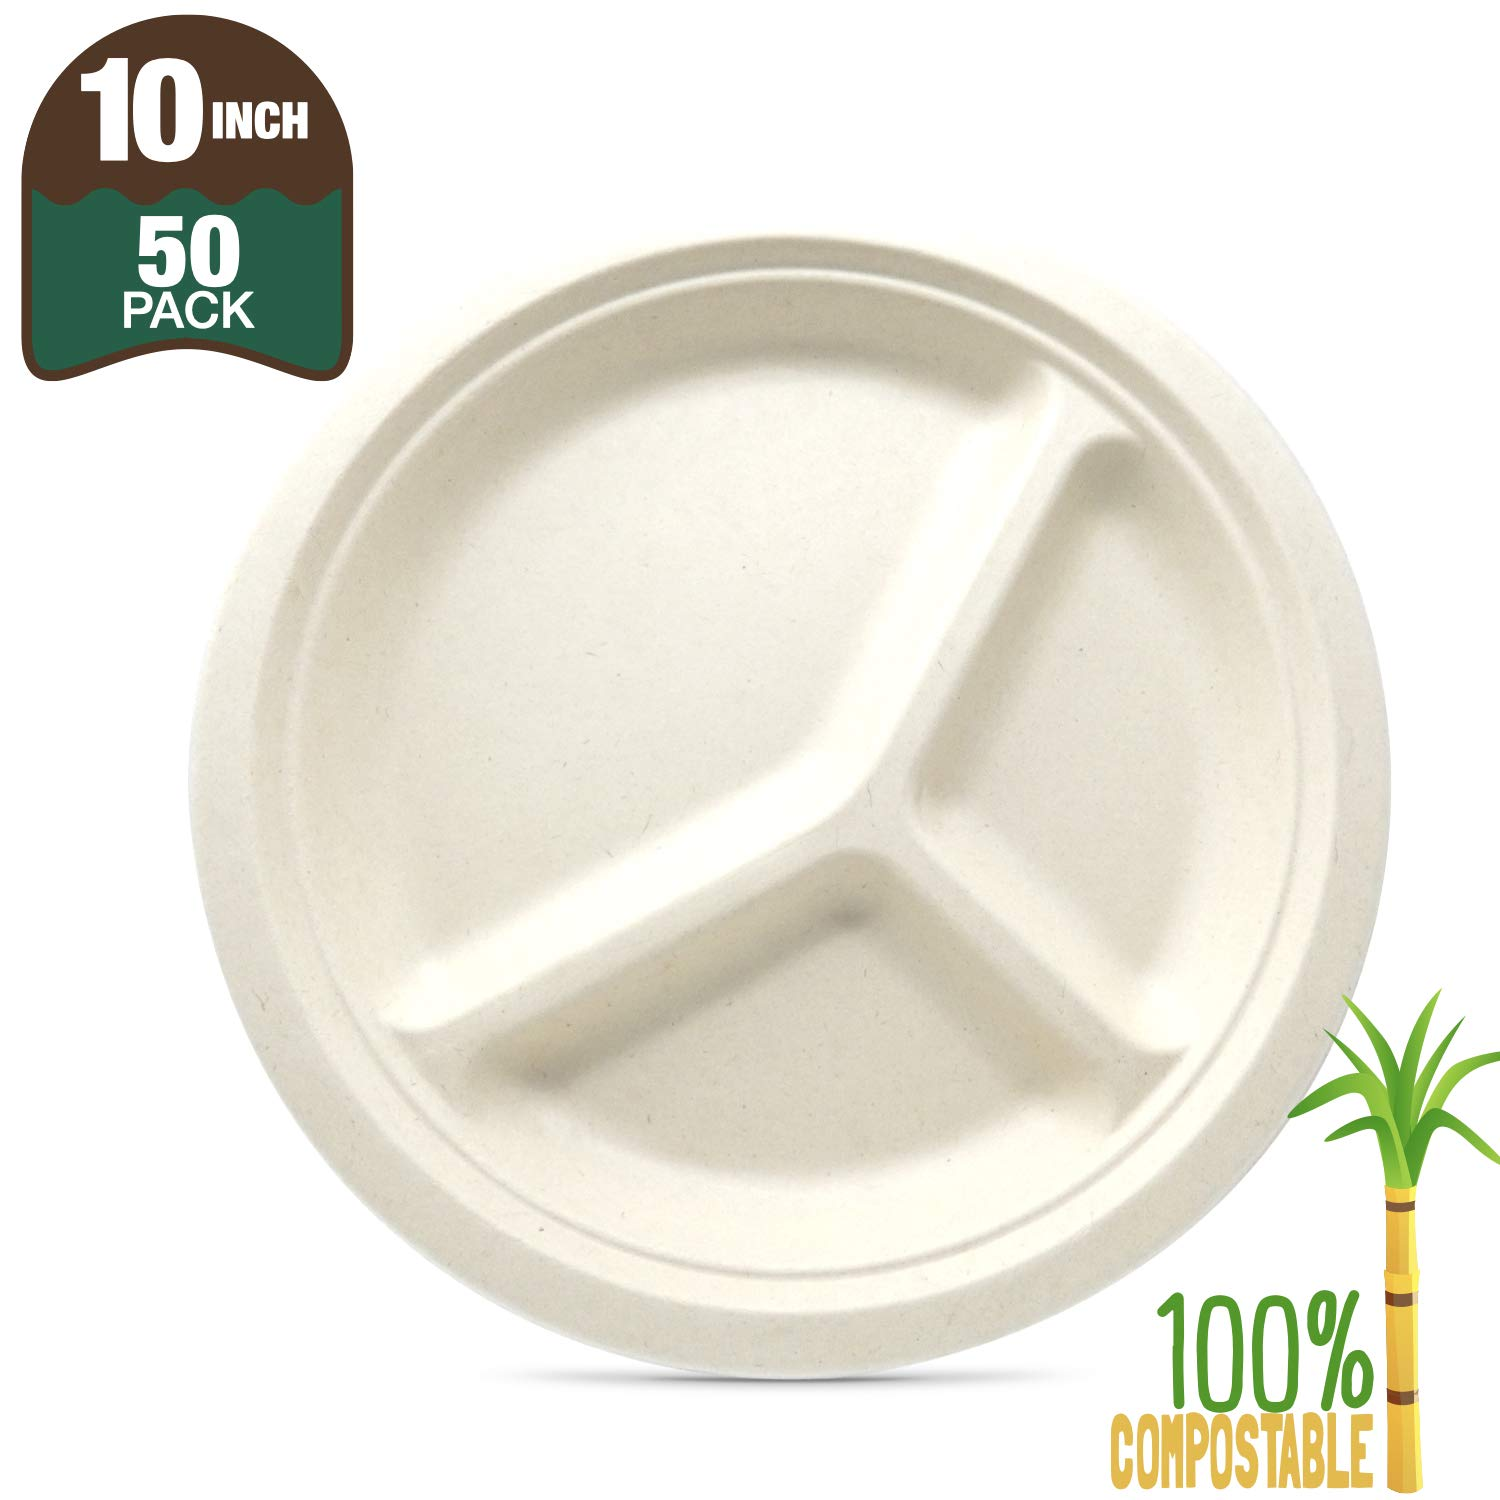 """Biomundi 100% Compostable 10"""" 3-compartment Paper Plates [50-pack] Heavy-duty Quality Natural Disposable Bagasse, Eco-friendly Made Of Sugar Cane Fibers, 10 Inch, Brown Biodegradable"""